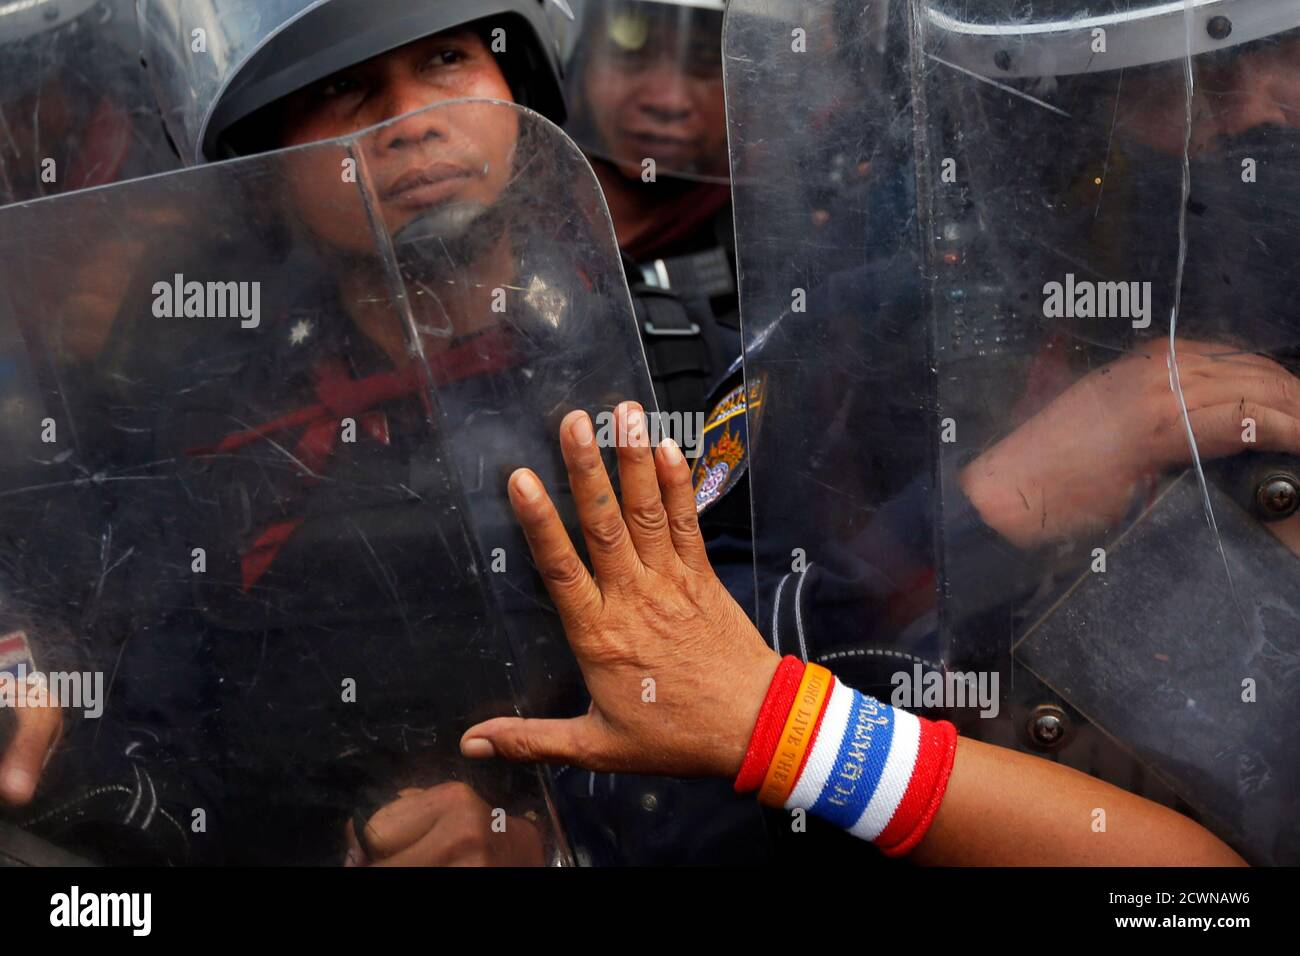 An anti-government protester pushes against riot policemen at a barricade near the Government House in central Bangkok February 14, 2014. Thousands of Thai riot police were deployed on Friday to seize back protest sites around government buildings in Bangkok that have been occupied for months by demonstrators seeking to topple Prime Minister Yingluck Shinawatra.  REUTERS/Damir Sagolj (THAILAND - Tags: SOCIETY CIVIL UNREST) Stock Photo